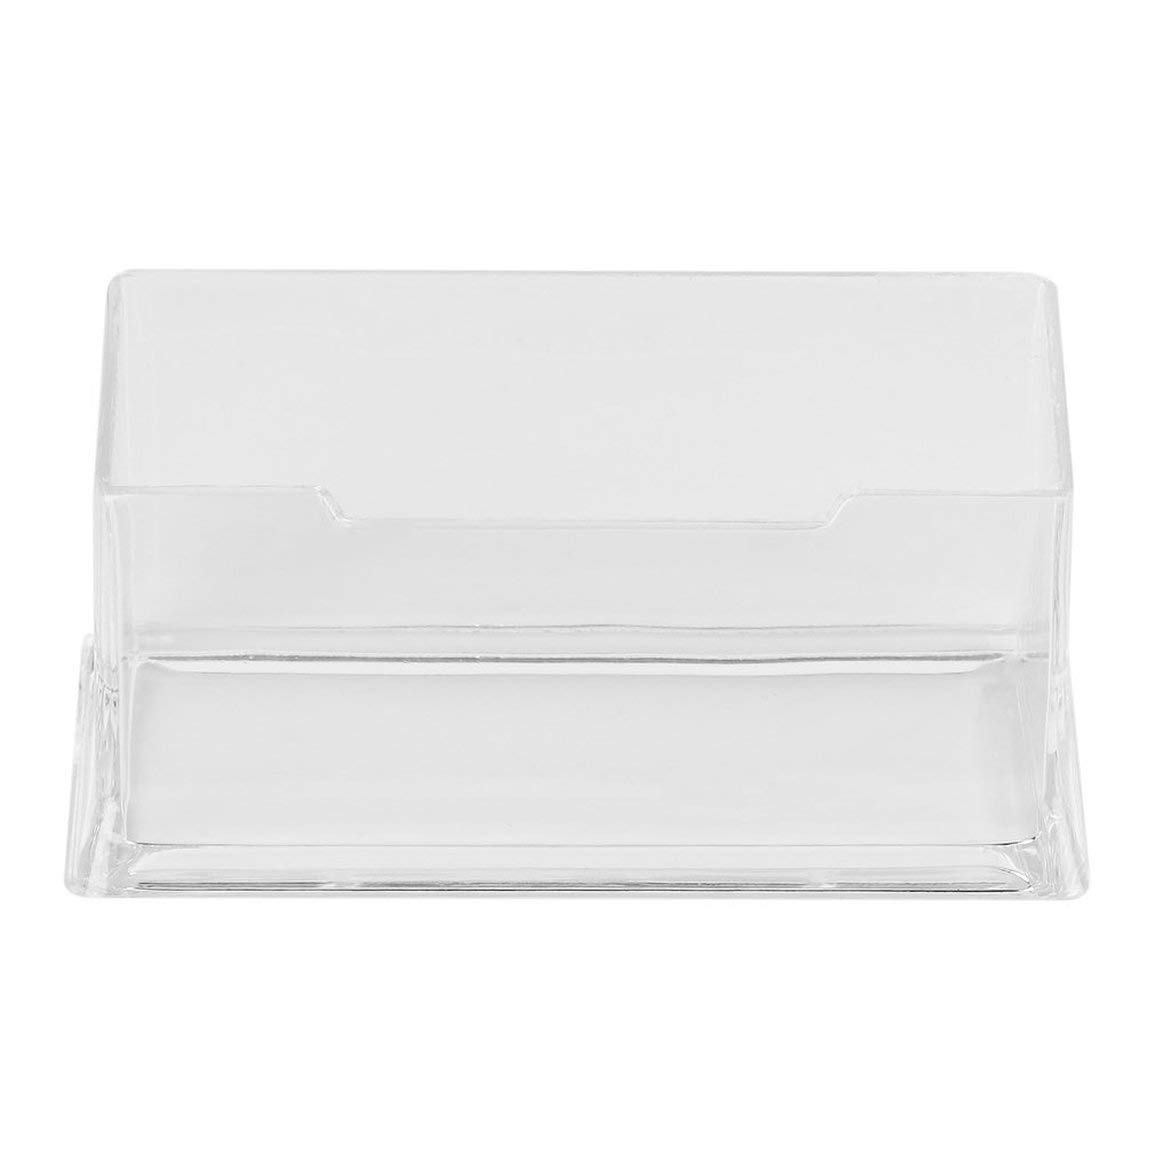 world famous sale online Clear PMMA Business Card Holder Display ...